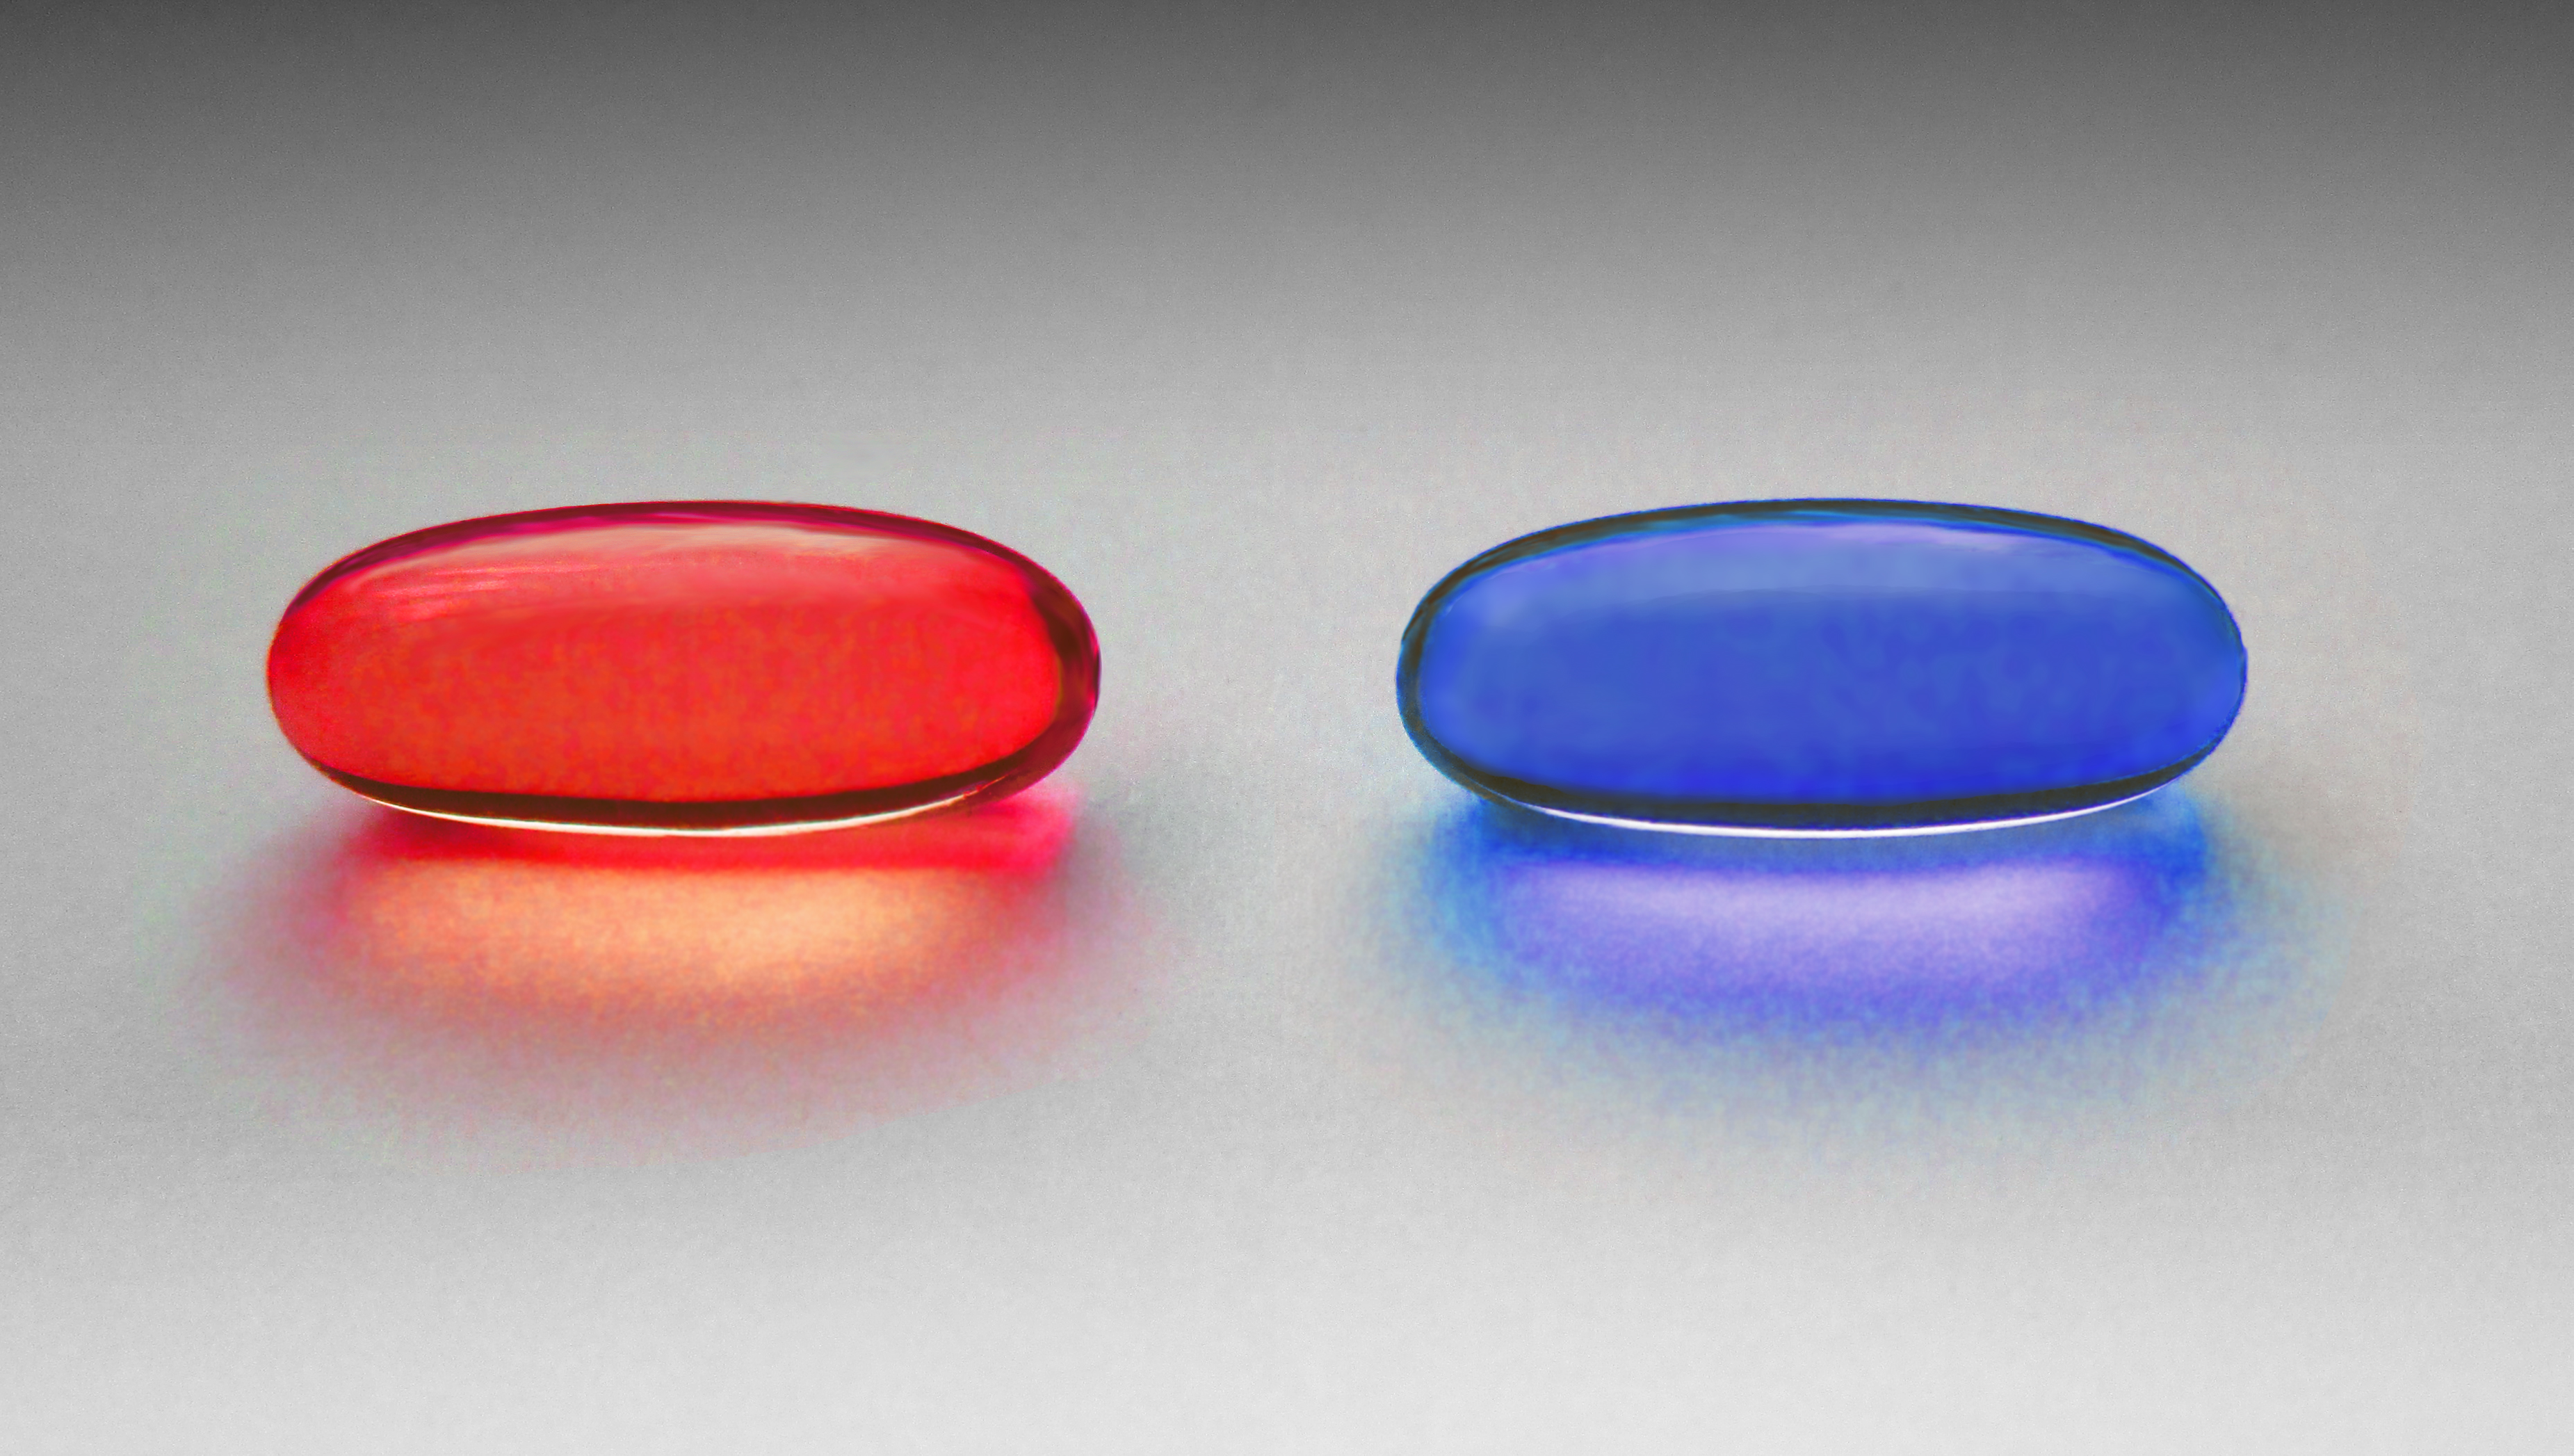 Red pill and blue pill - Wikipedia